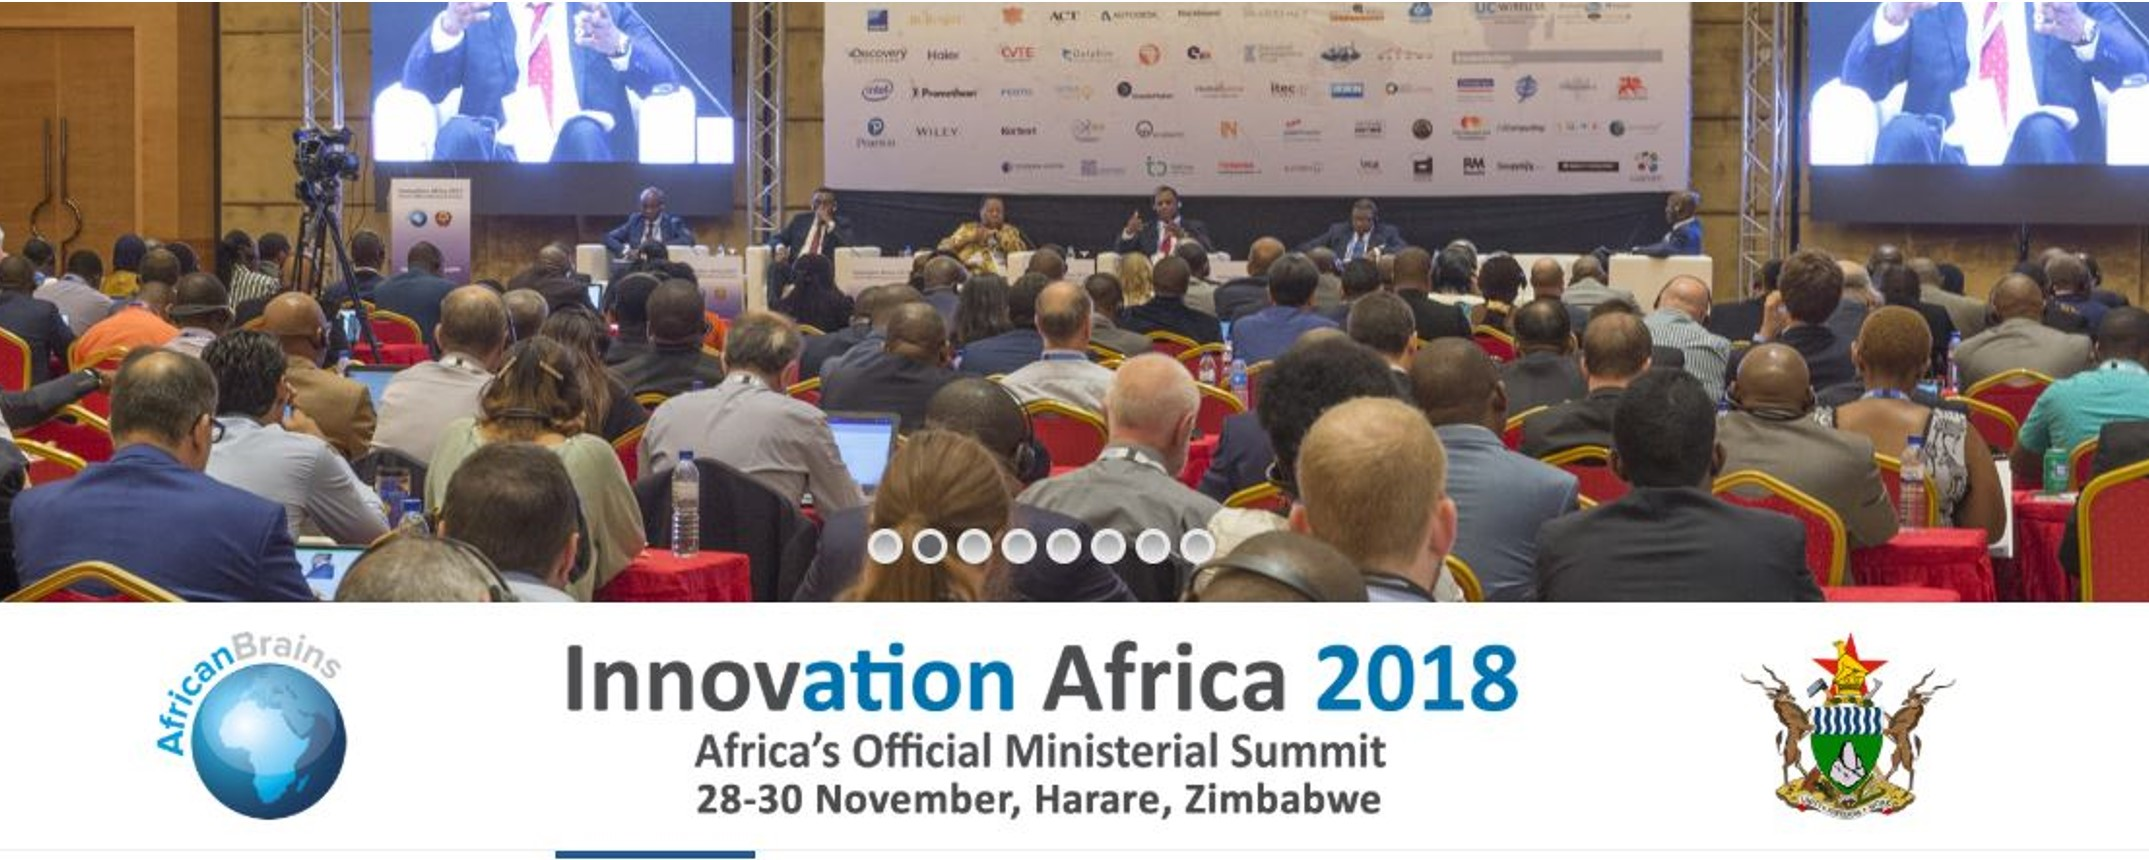 AricanBrains - Innovation Africa 2018 Movemeback African event cover image